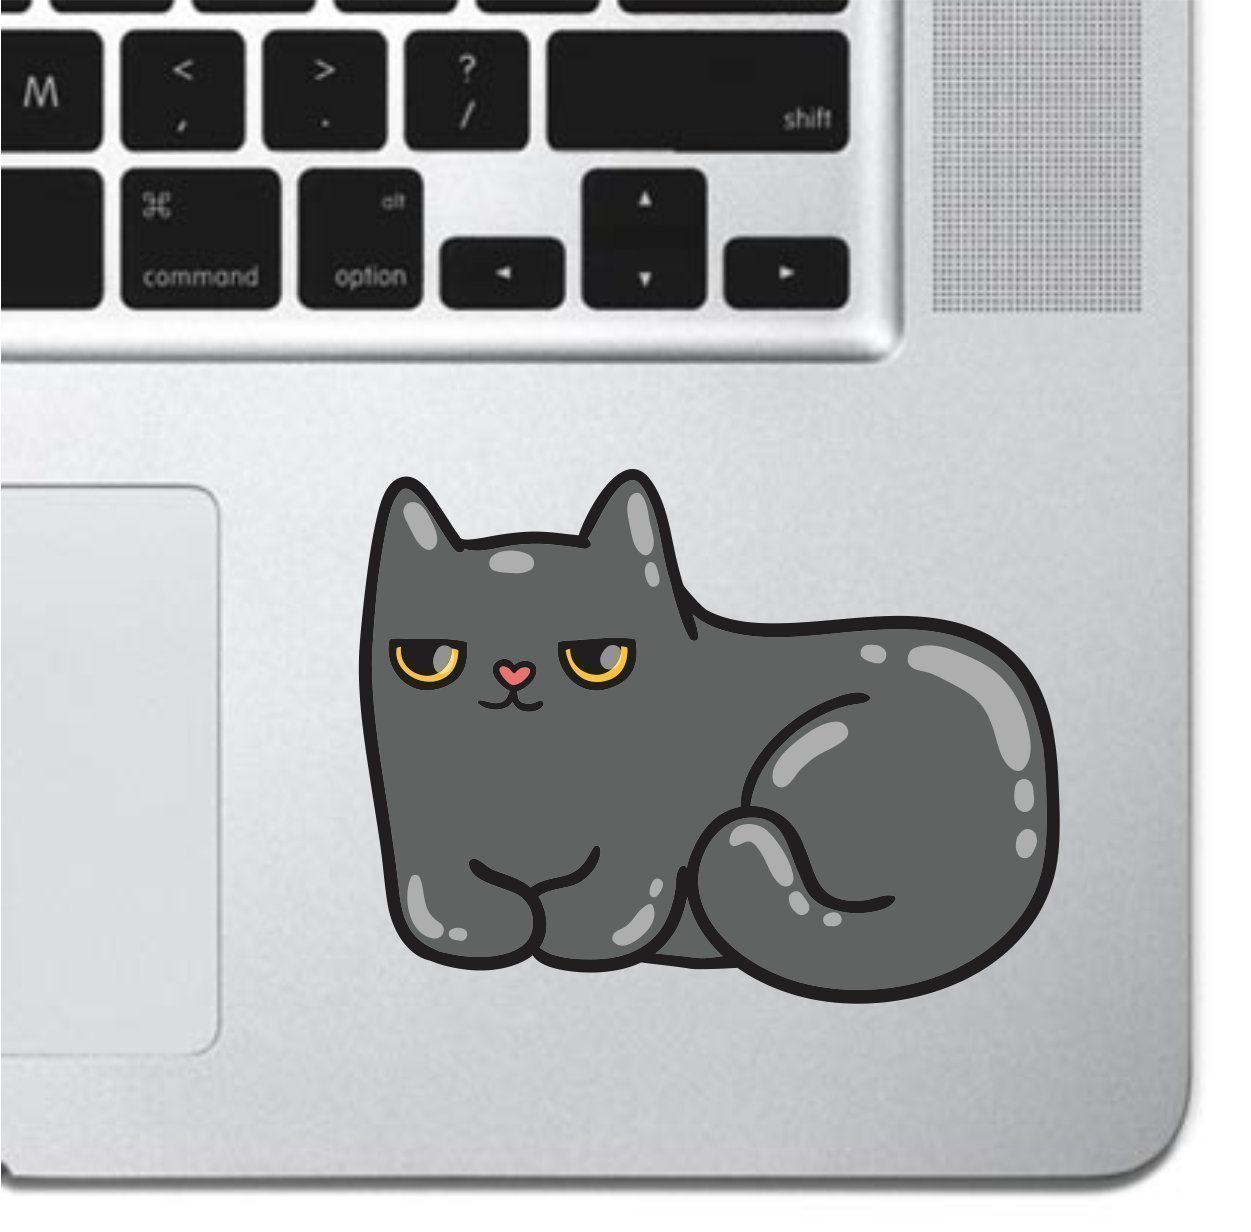 Grumpy Cat Laptop Sticker Keyboard, Keypad Vinyl Macbook Decal Sticker - Skin Track Pad MacBook Pro Air 13 15 17 iPad Laptop Decal iPad Sticker Kitten Sticker Cartoon Sticker